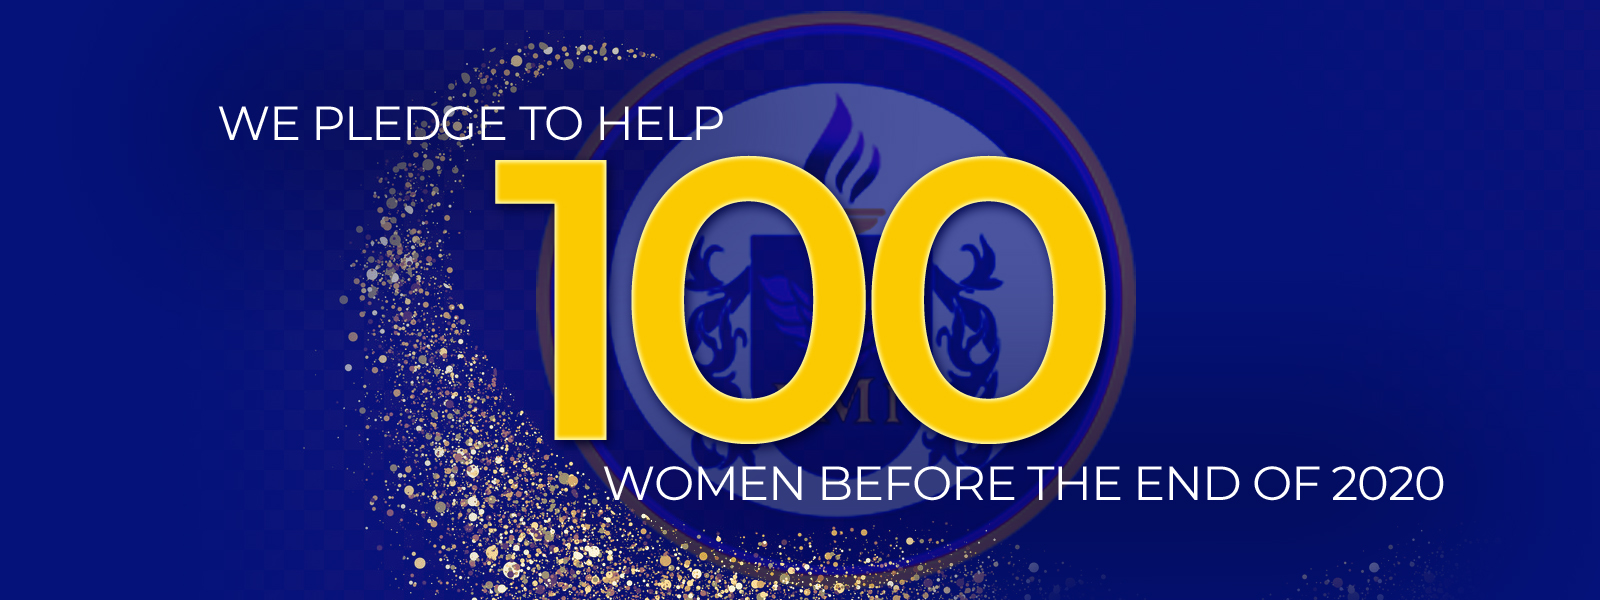 2nd Chance Living PMI, Inc., pledge to help 100 women before the end of 2020.